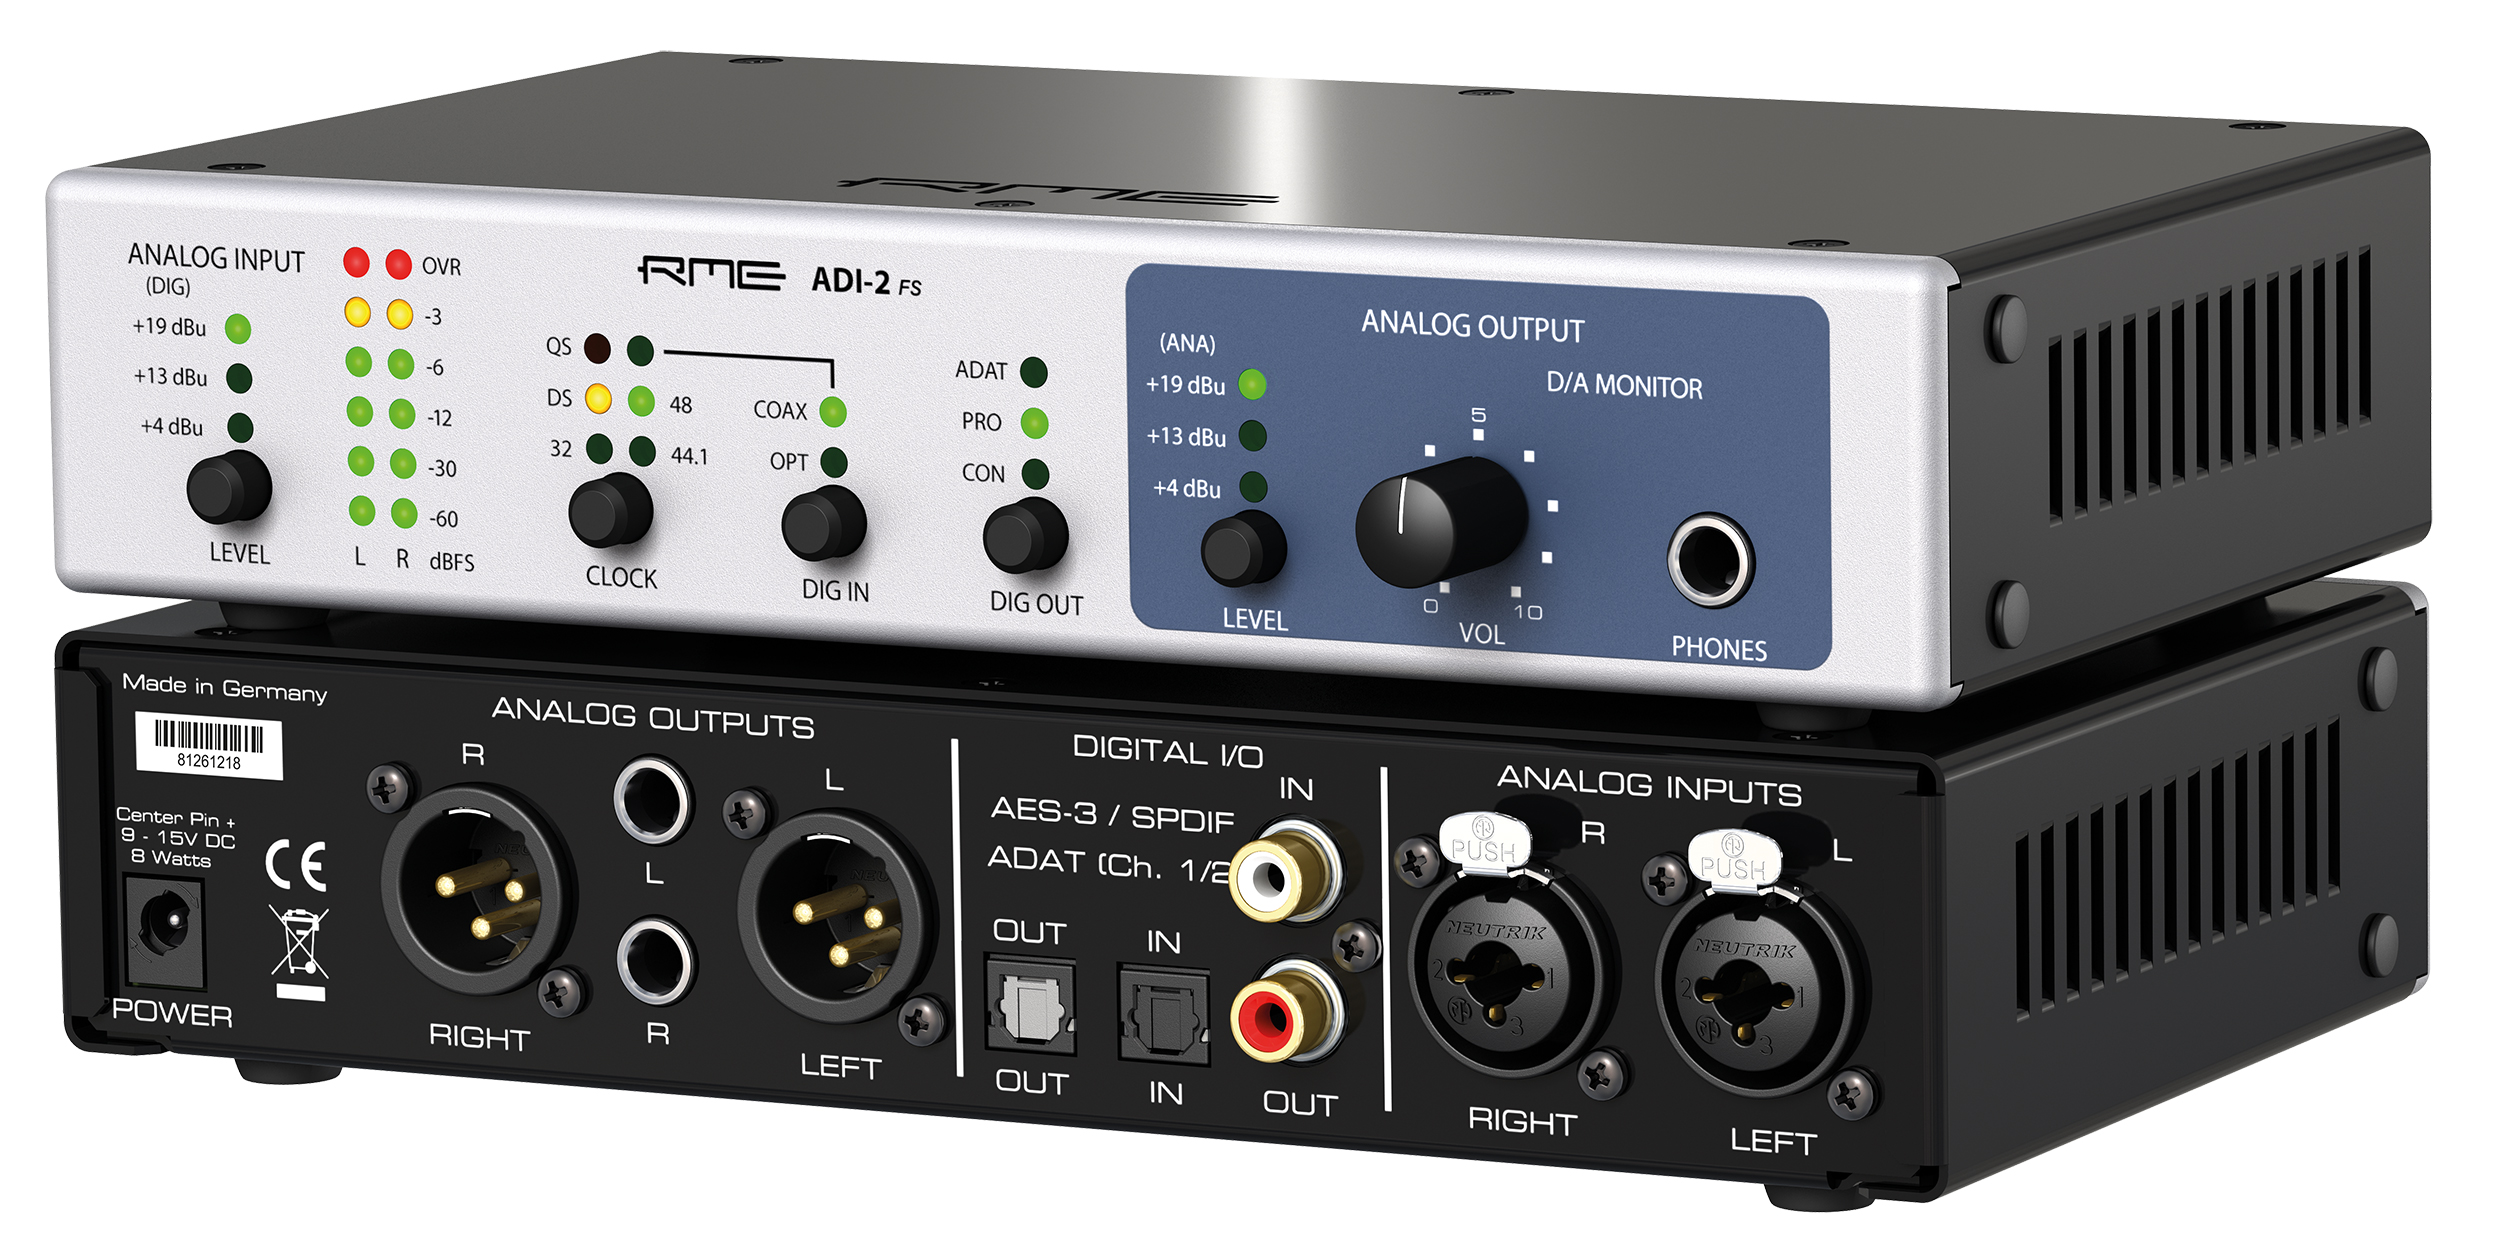 http://www.rme-audio.de/images/products/products_adi-2_fs_1b.jpg